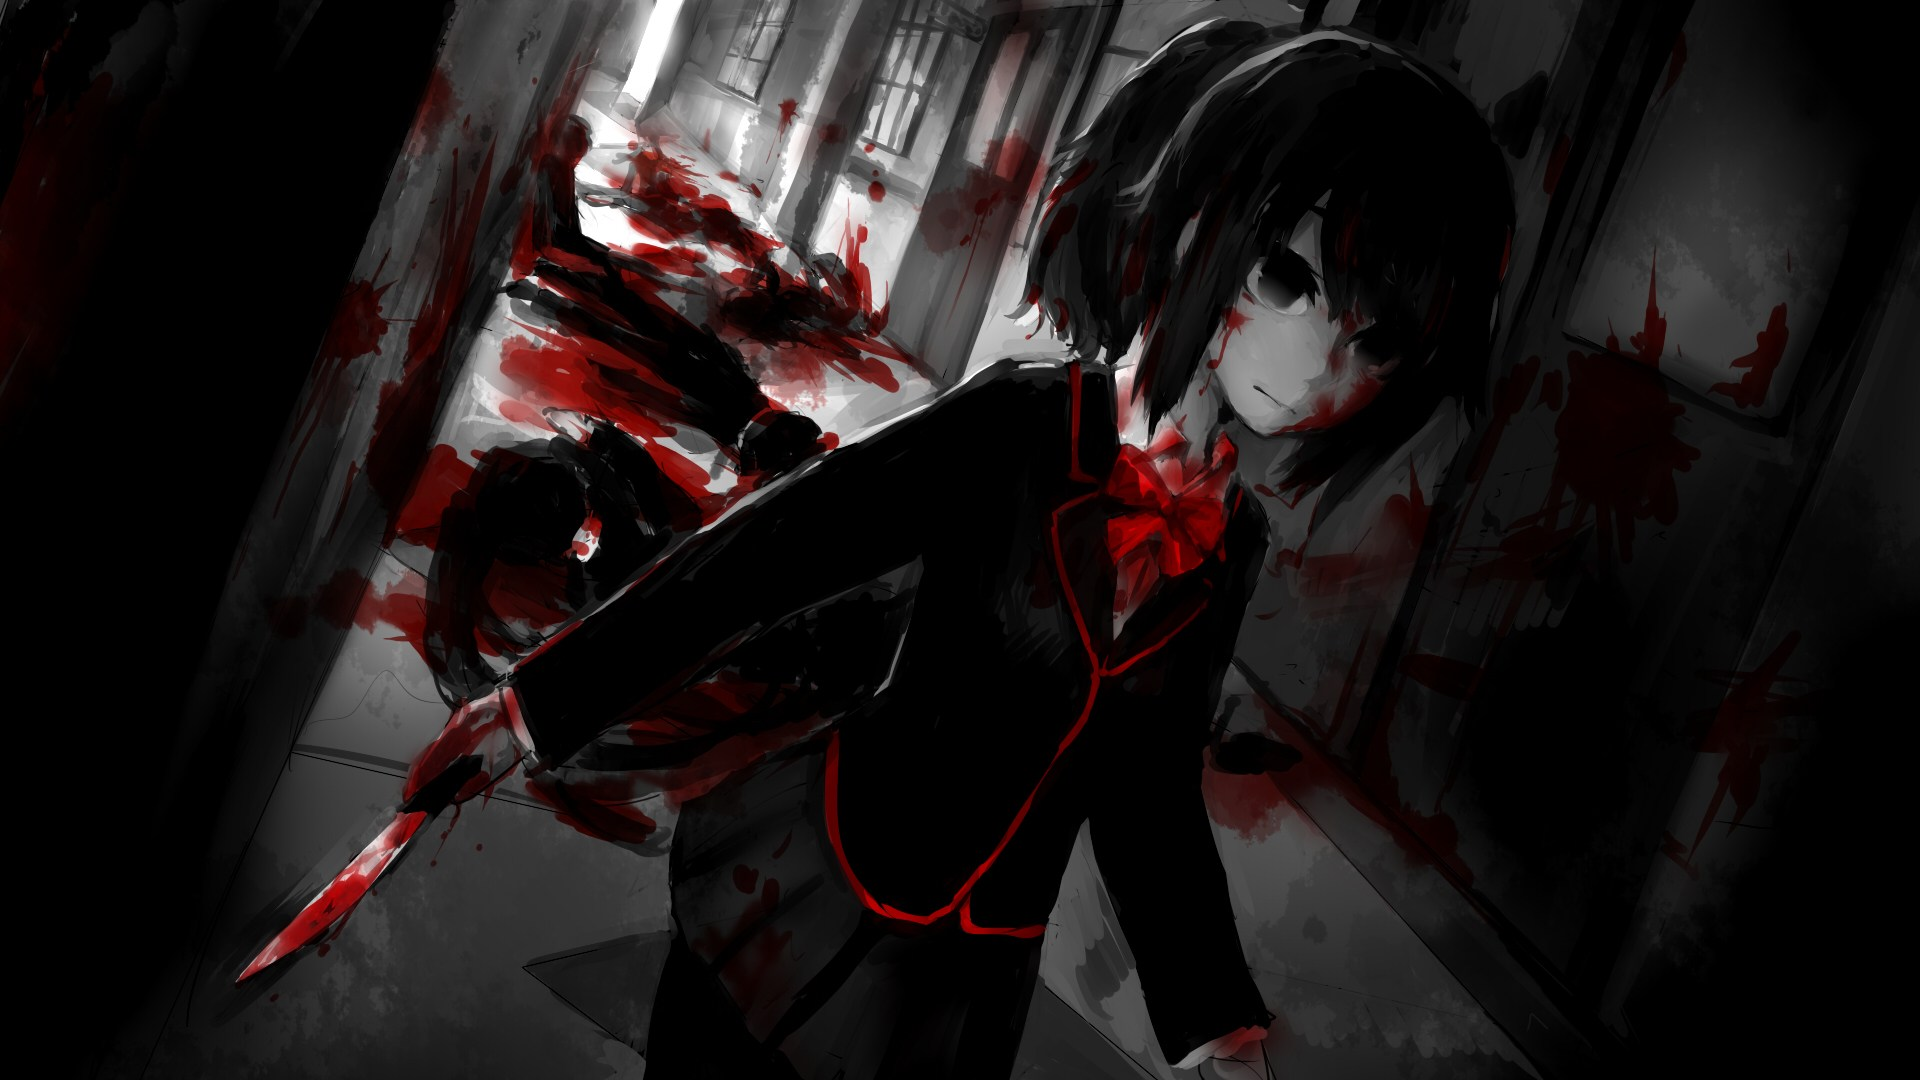 Anime Wallpaper Yandere